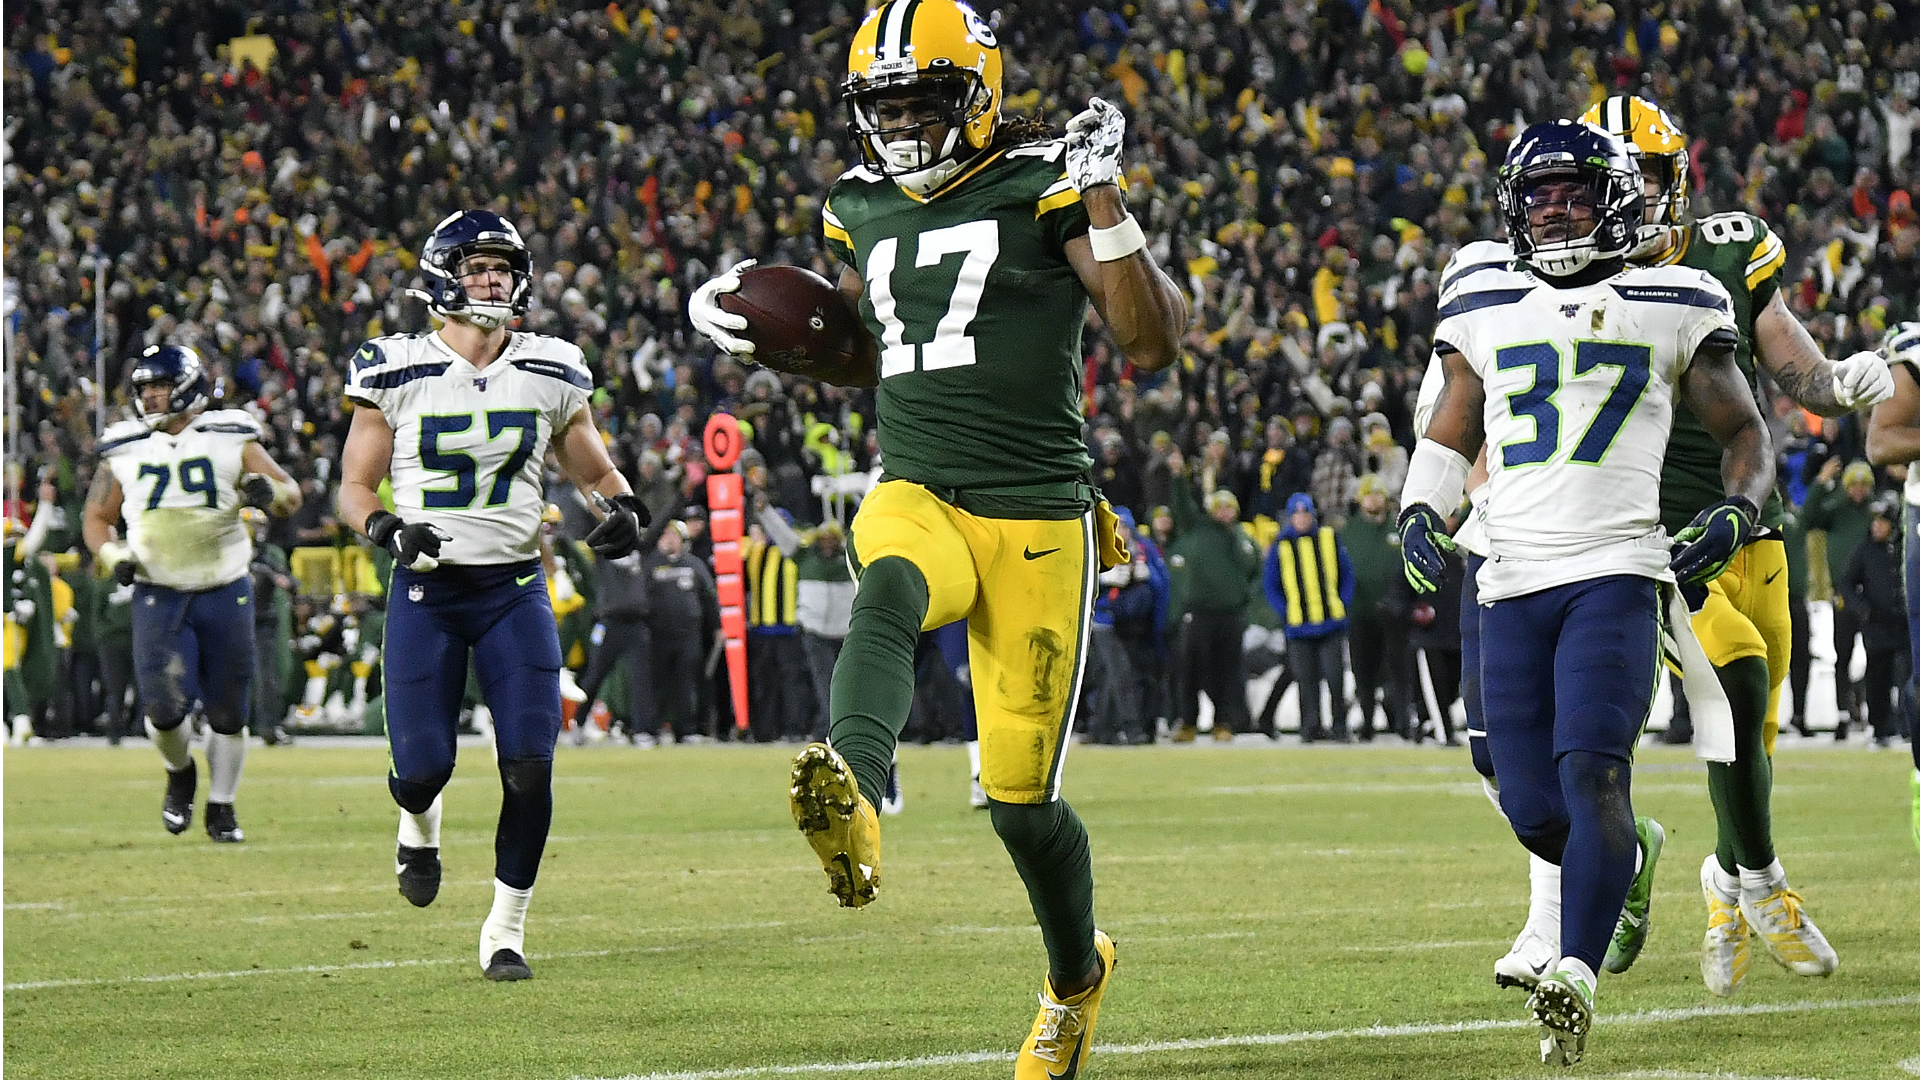 Packers Vs Seahawks Final Score Green Bay Avoids Late Game Choke To Beat Seattle Sporting News